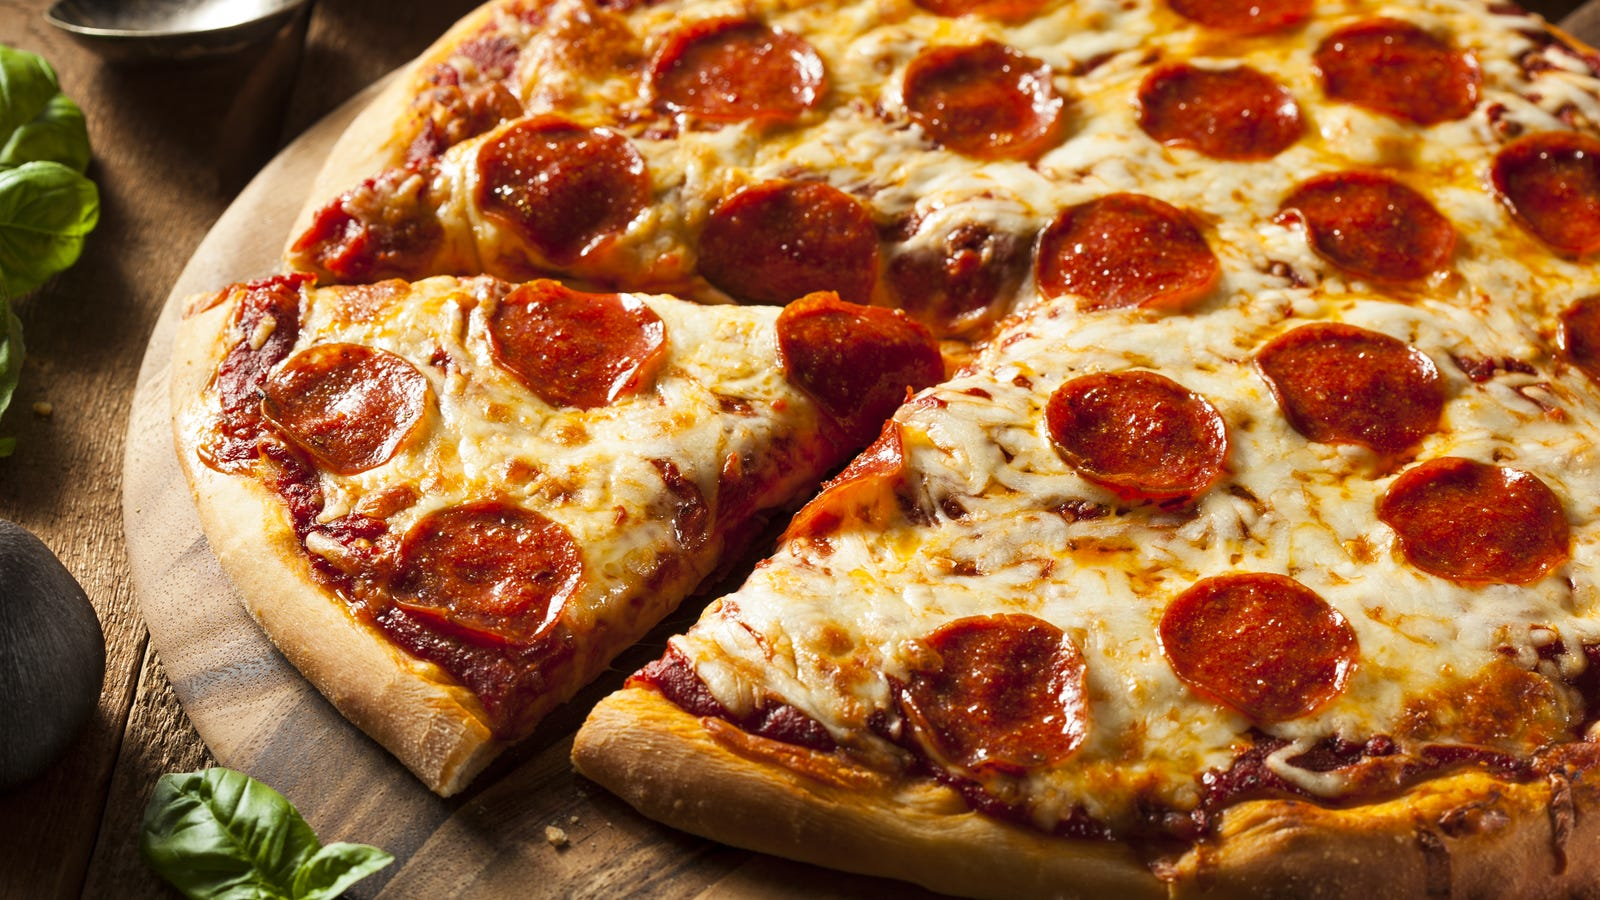 An Engineer Explains Why You Should Always Order the Larger Pizza